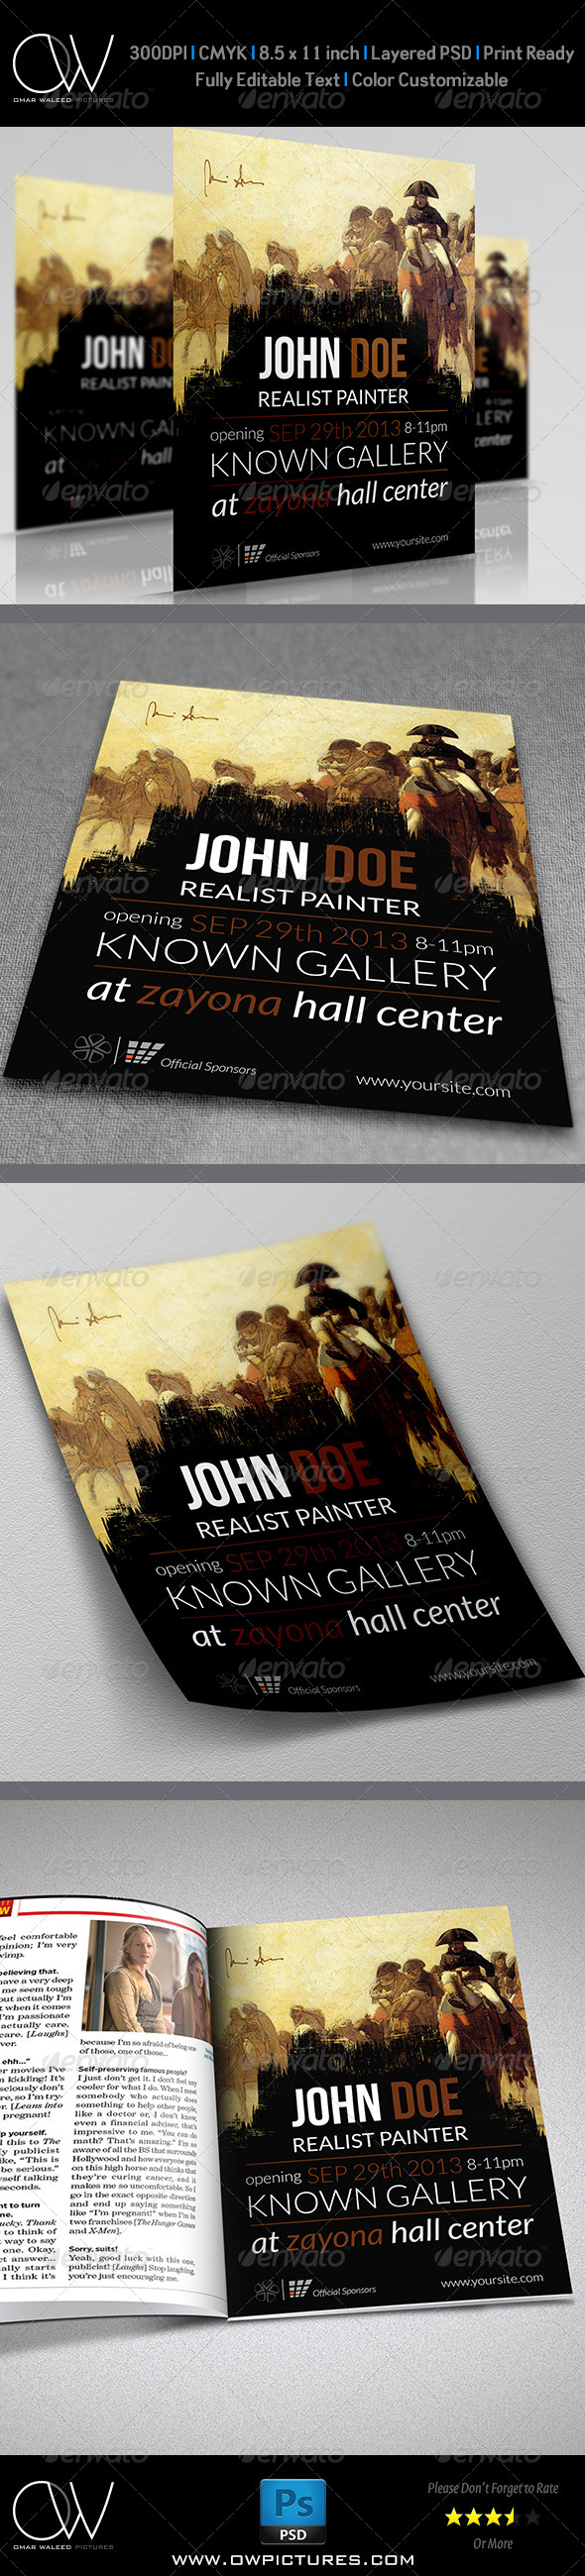 Gallery Flyer Template - Flyers Print Templates